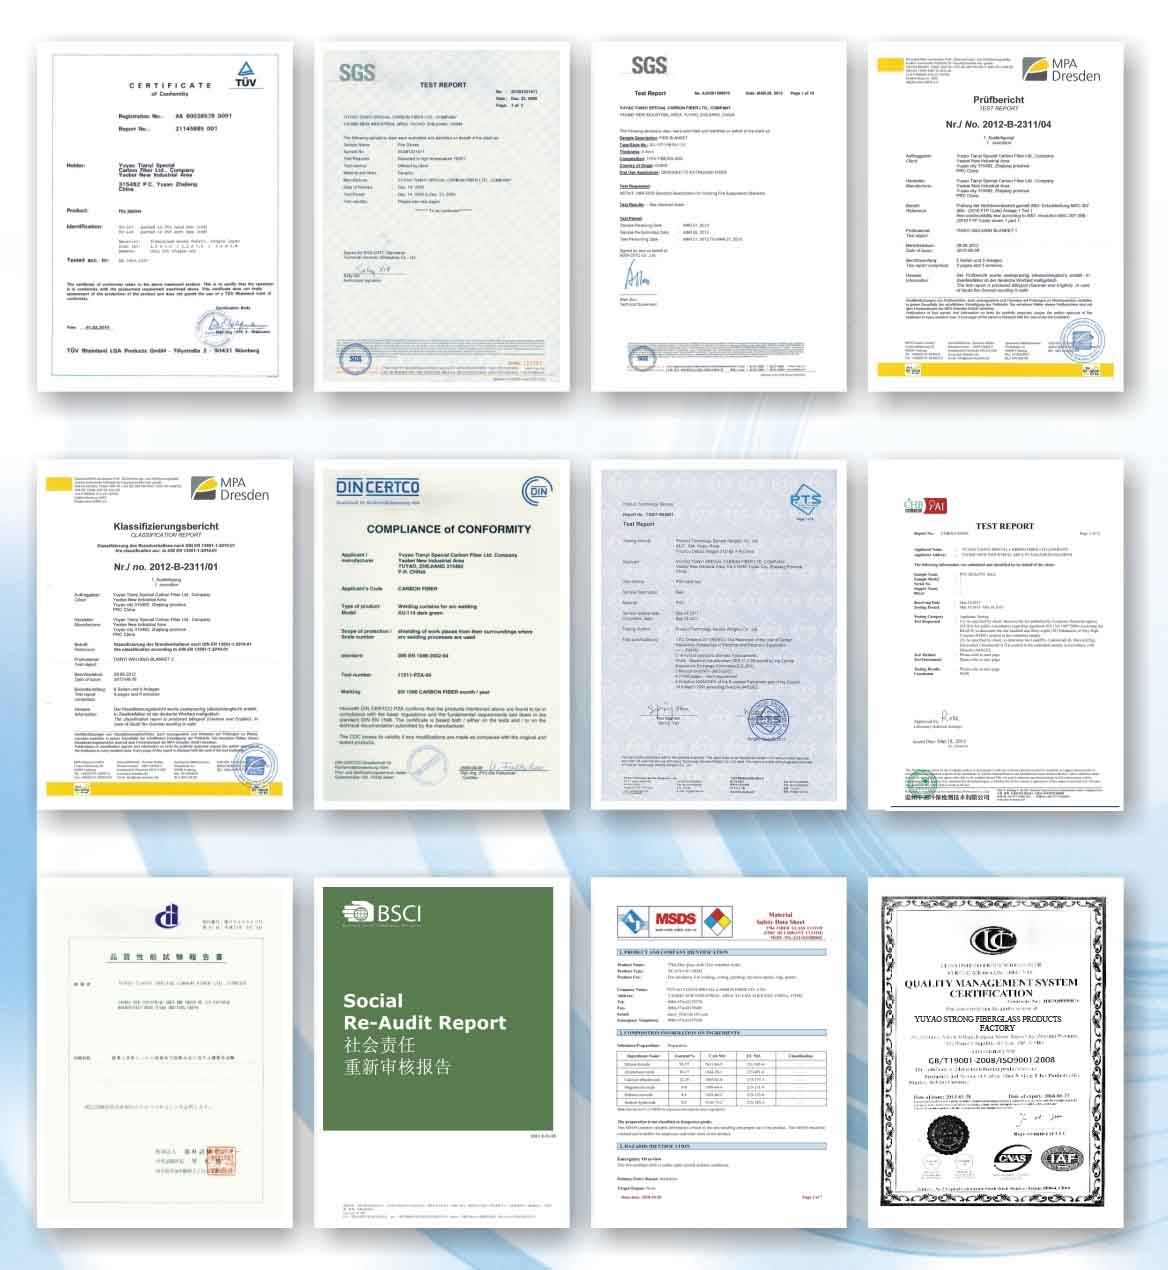 Certificate of company system